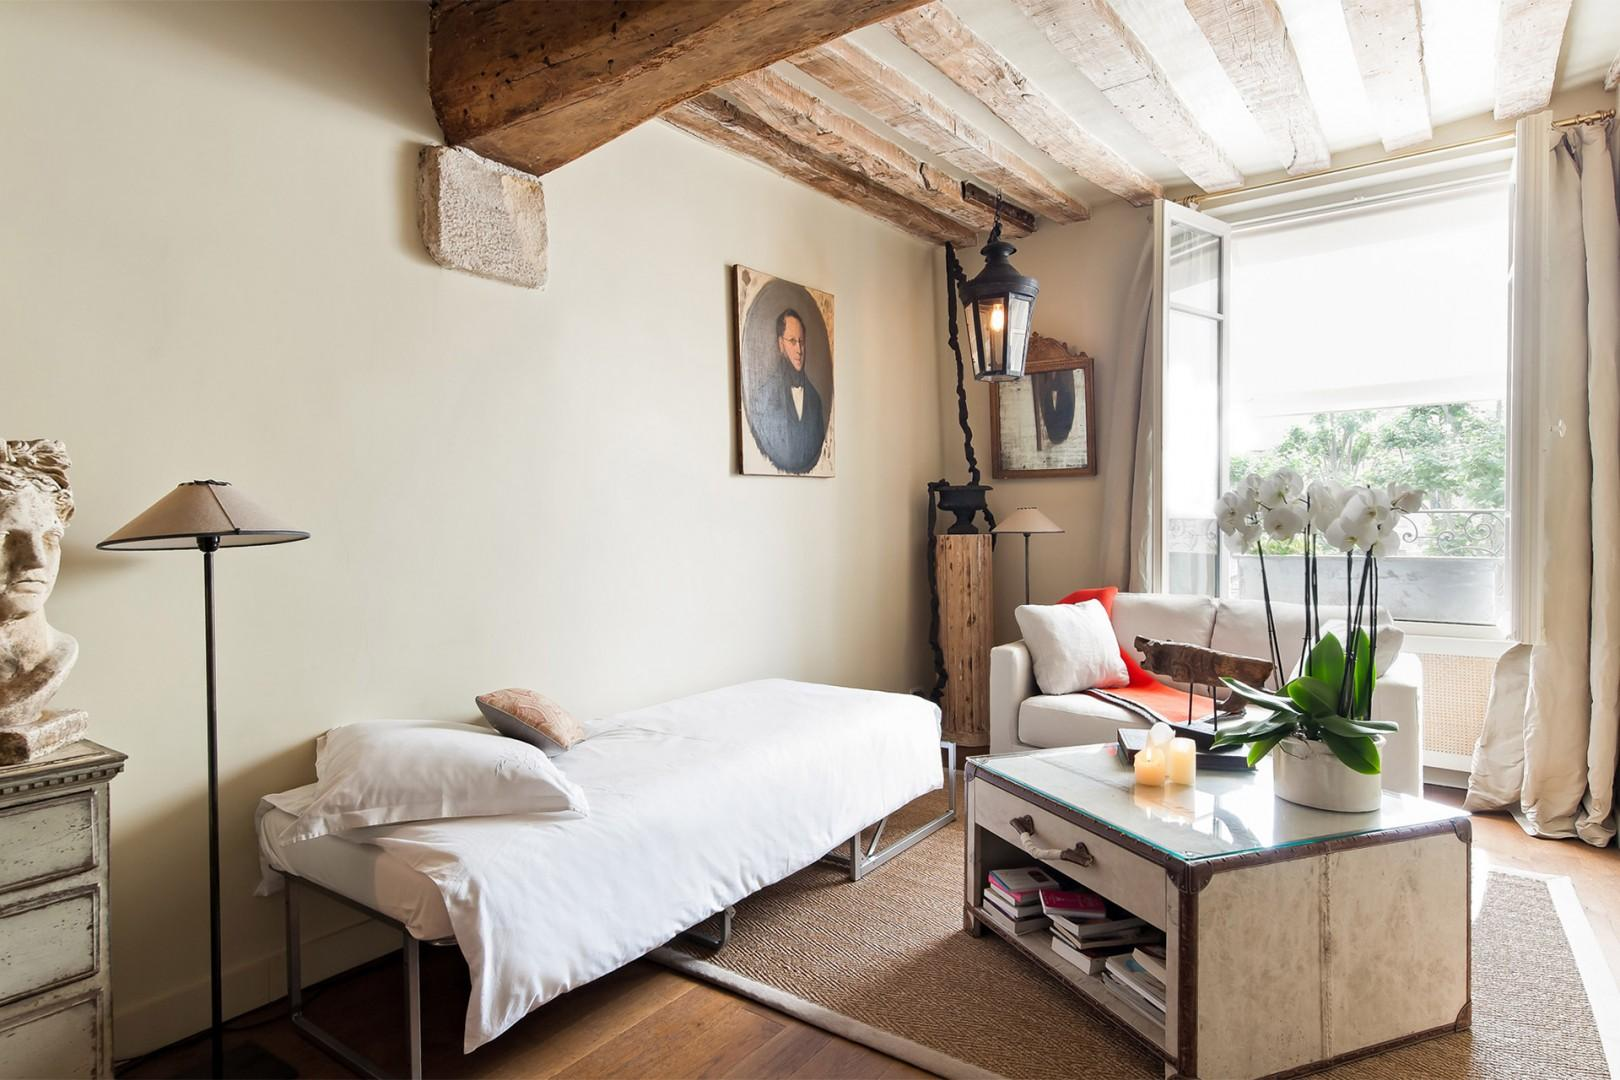 Enjoy leafy Paris views from your bed!